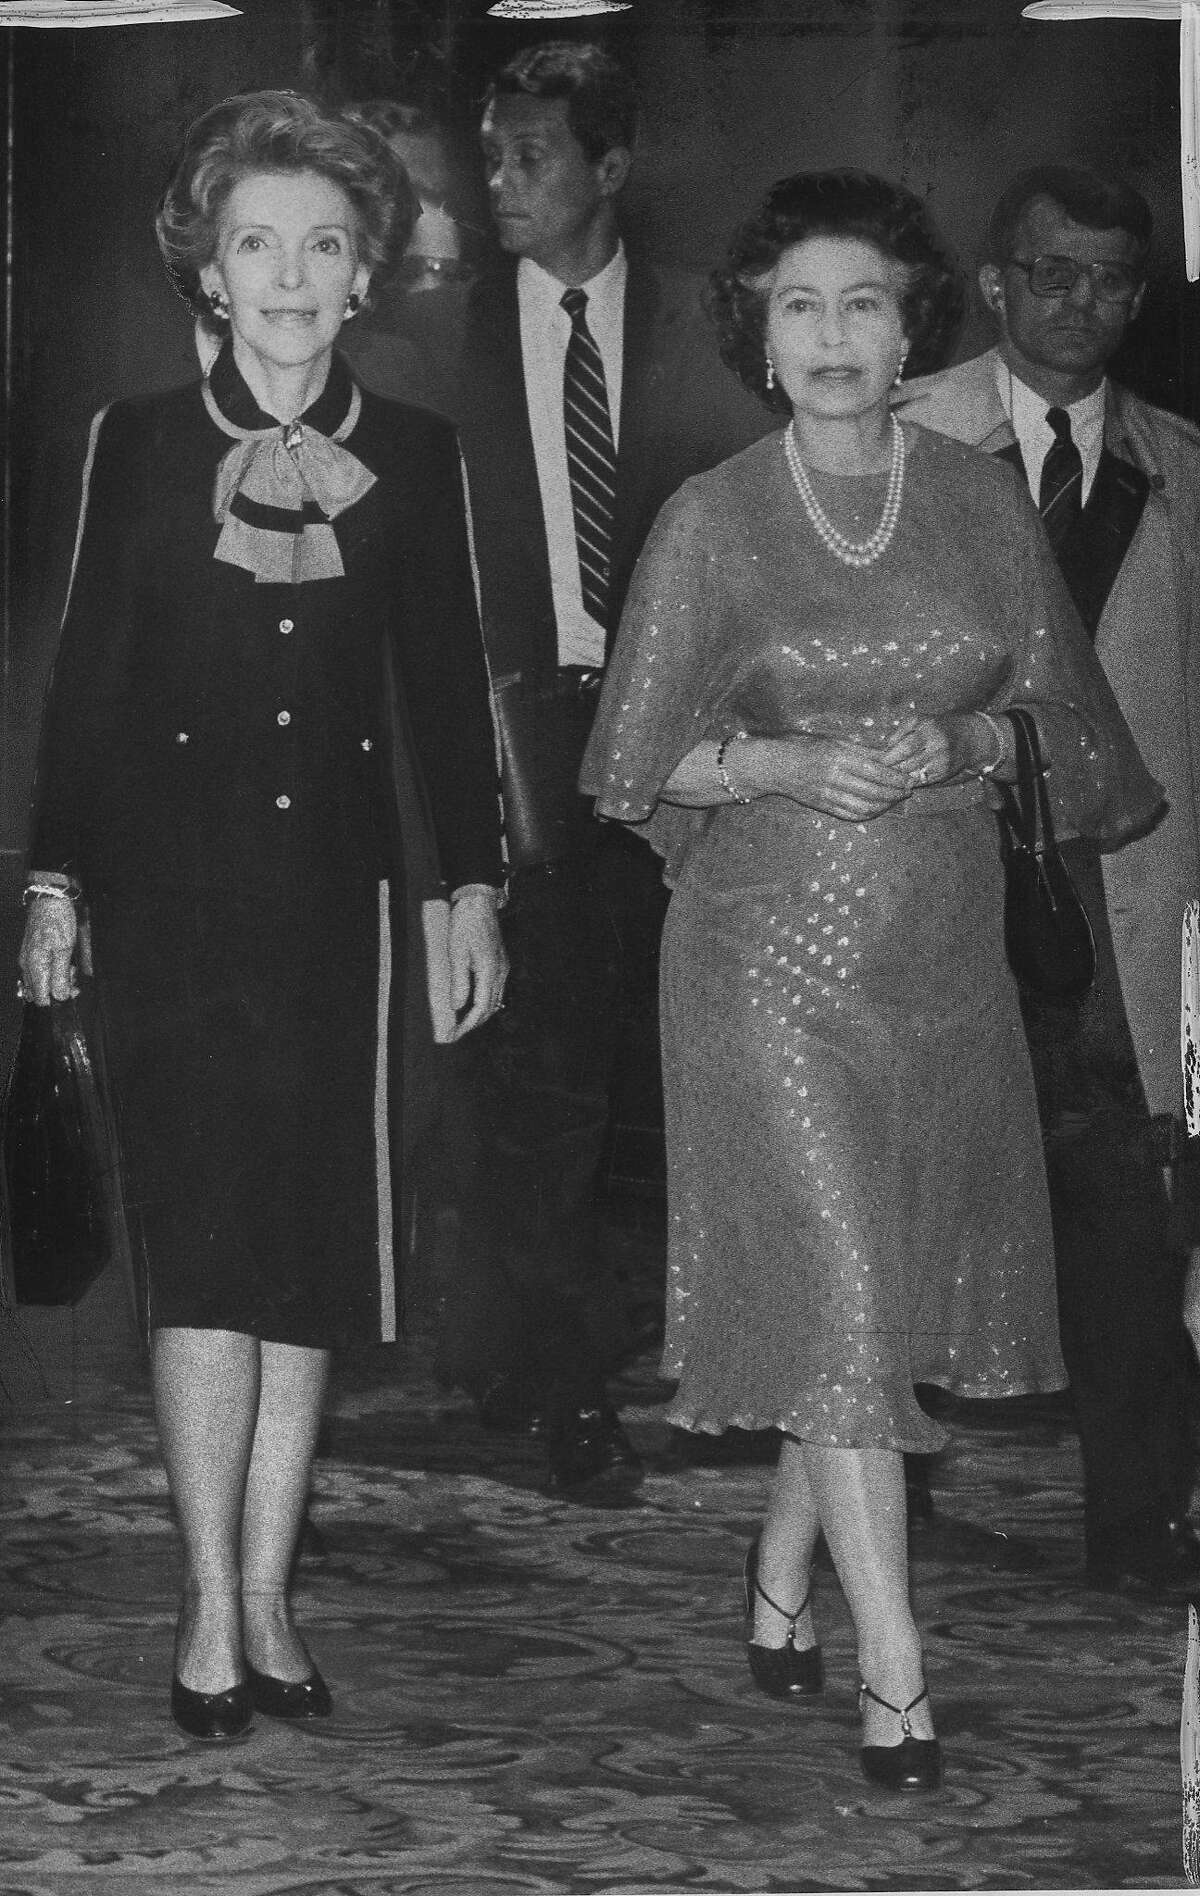 Queen Elizabeth II of Great Britain visits San Francisco. She is seen here with First lady Nancy Reagan in the St Francis Hotel lobby, on their way to dinner, March 2, 1983 Photo ran 03/03/1983, p. 21